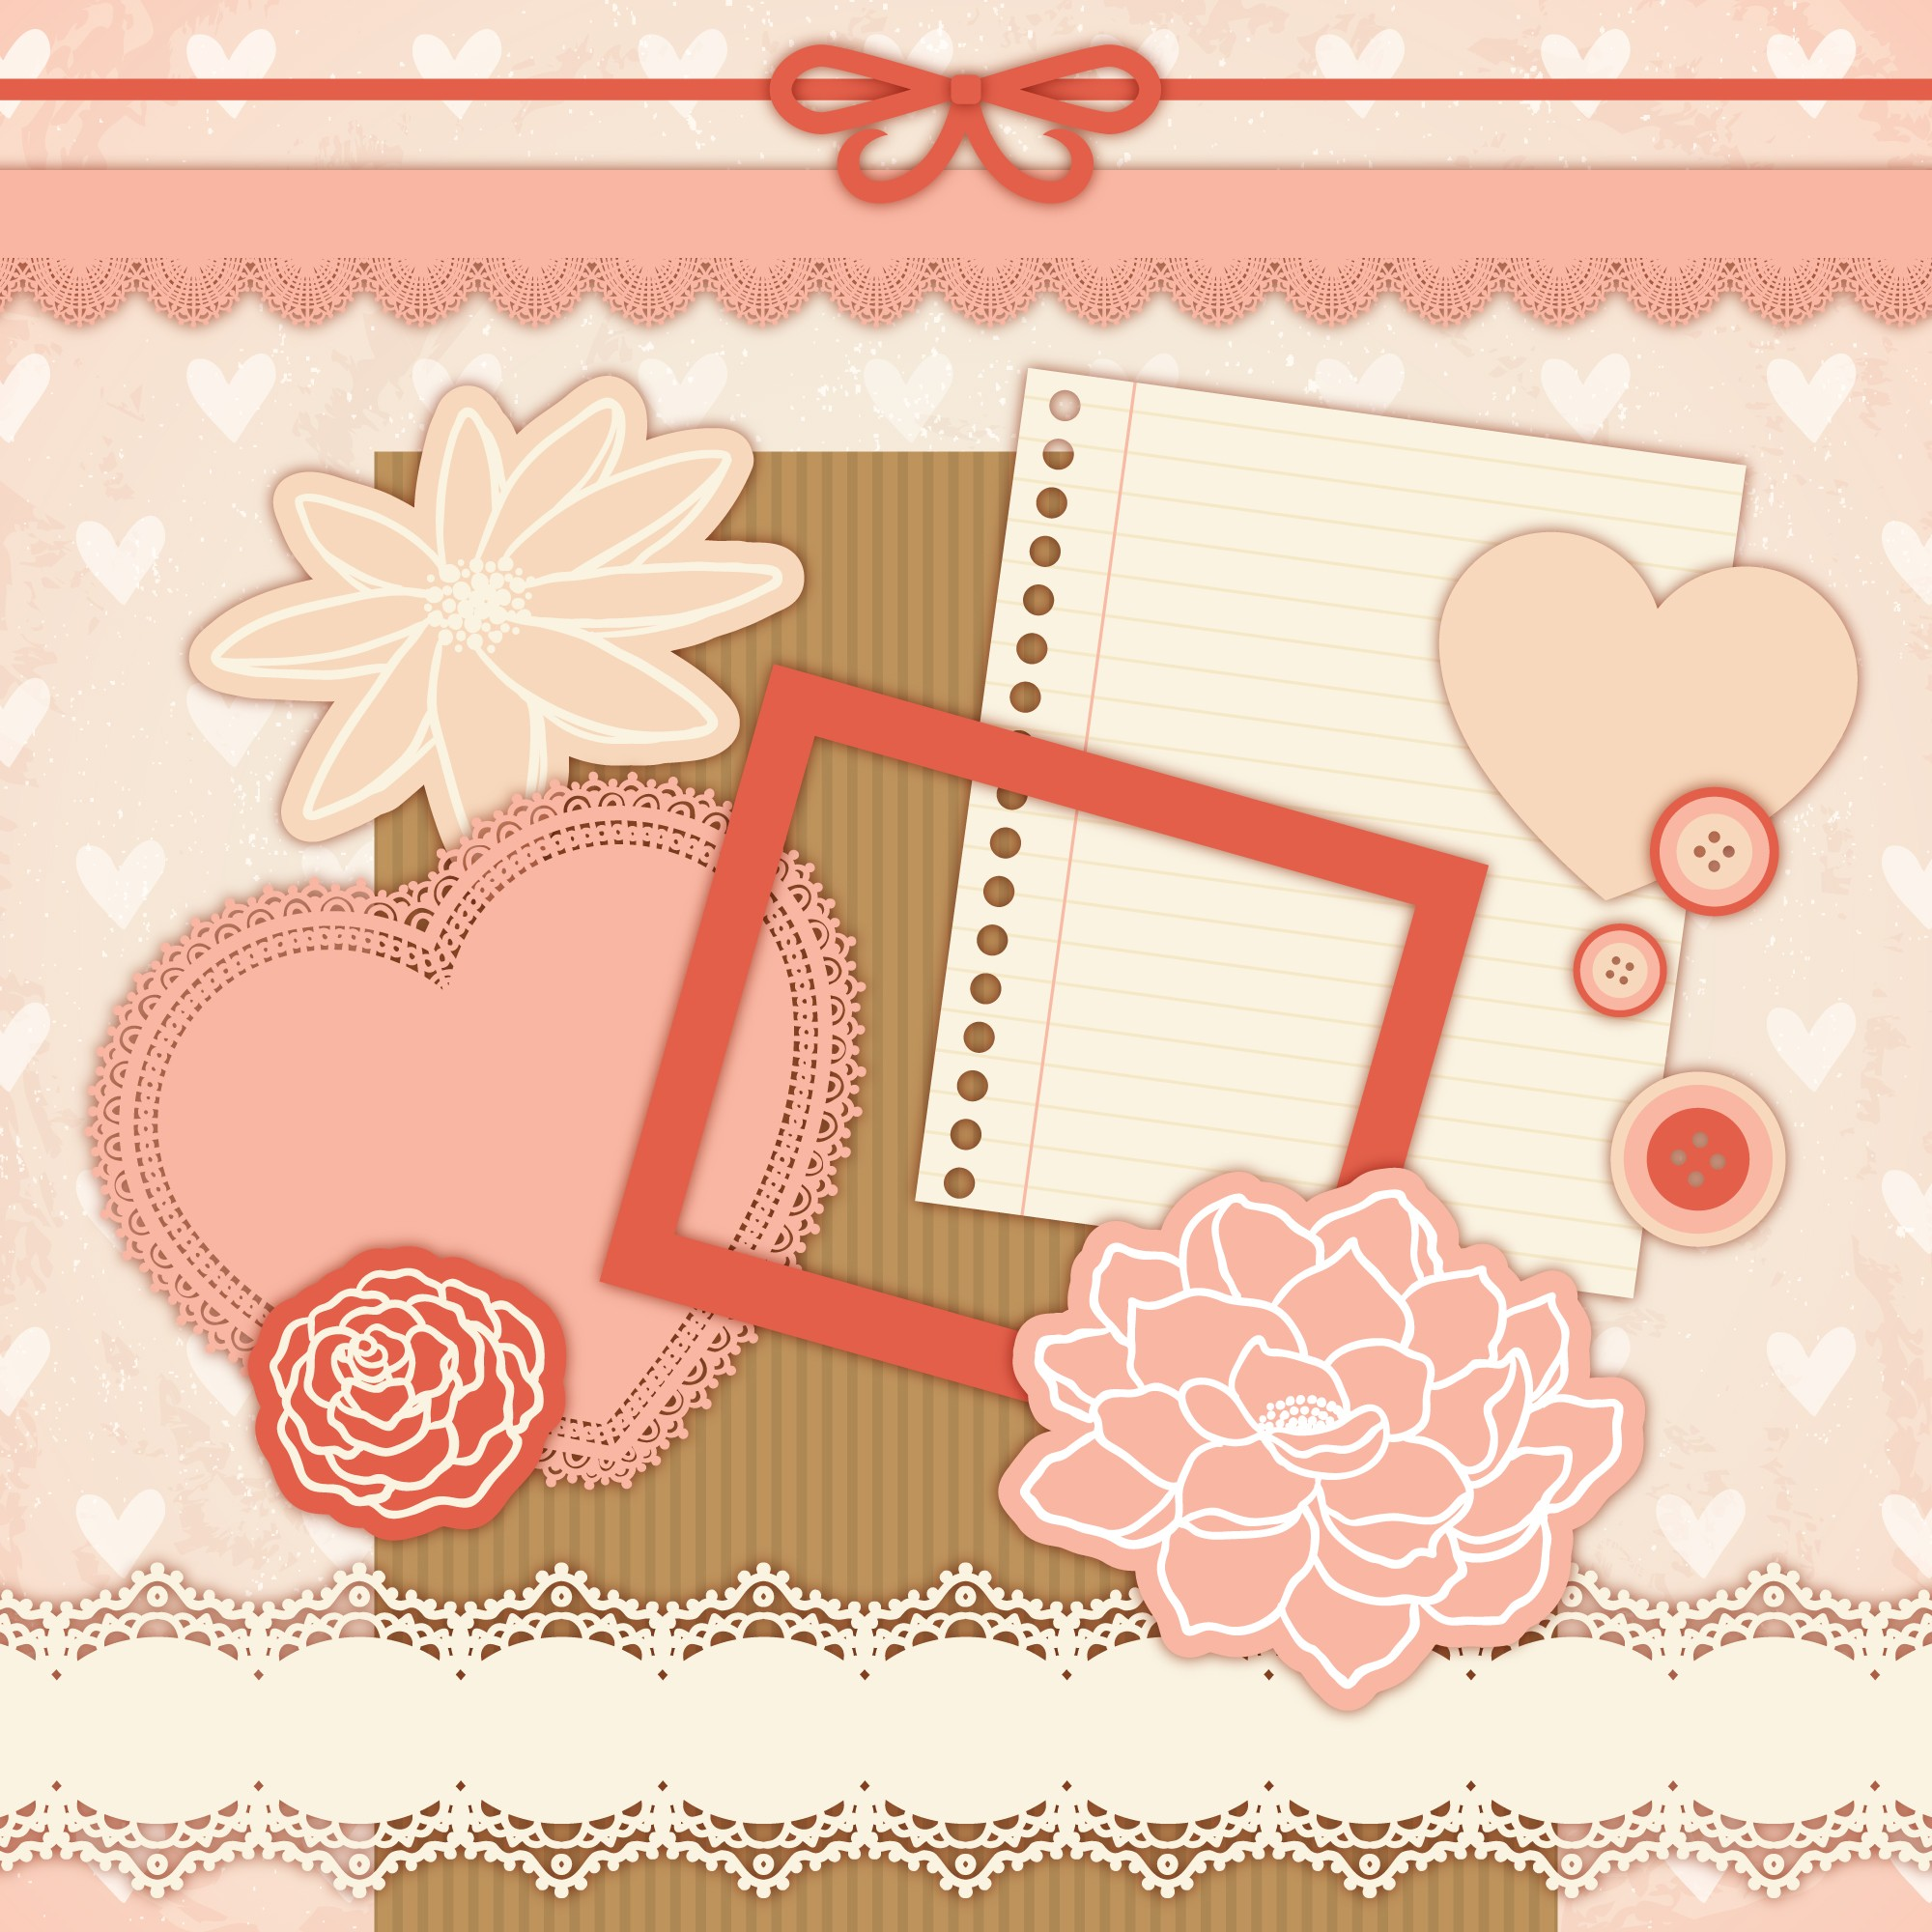 Scrapbooking no estilo do vintage